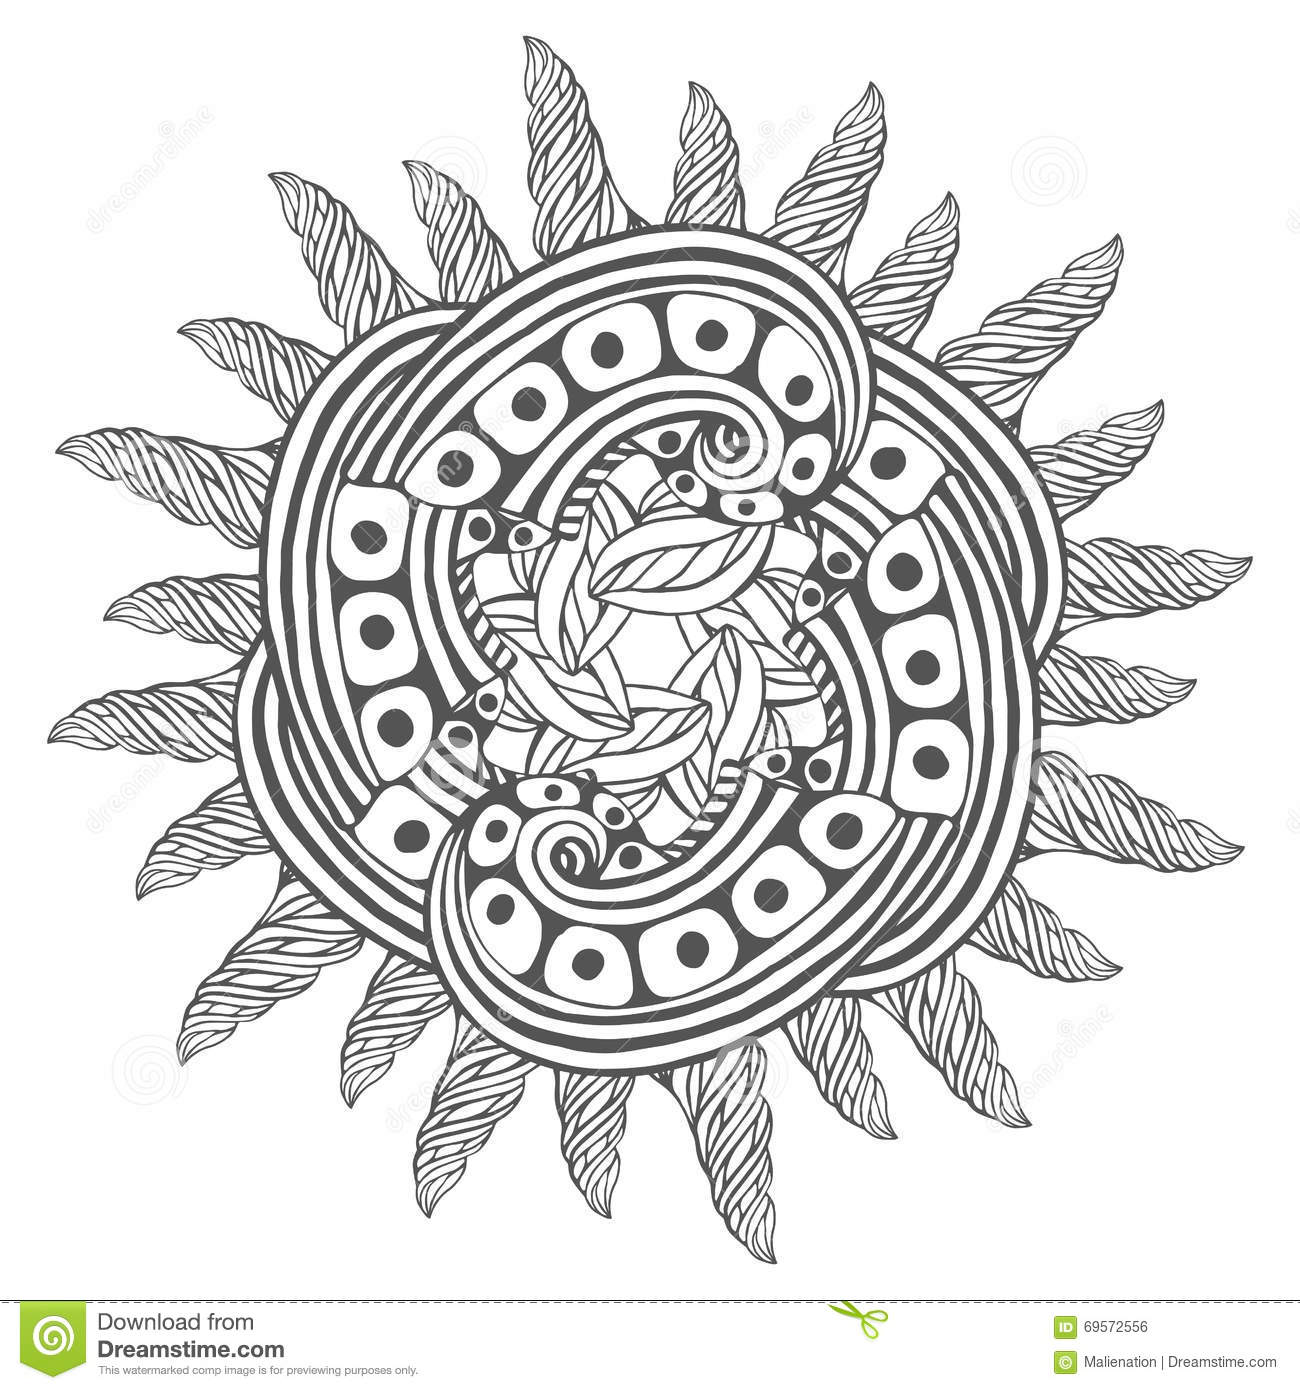 Magic Zentangle Art For Coloring Book Pages Mandala Tattoo Design Vector Illustration Royalty Free